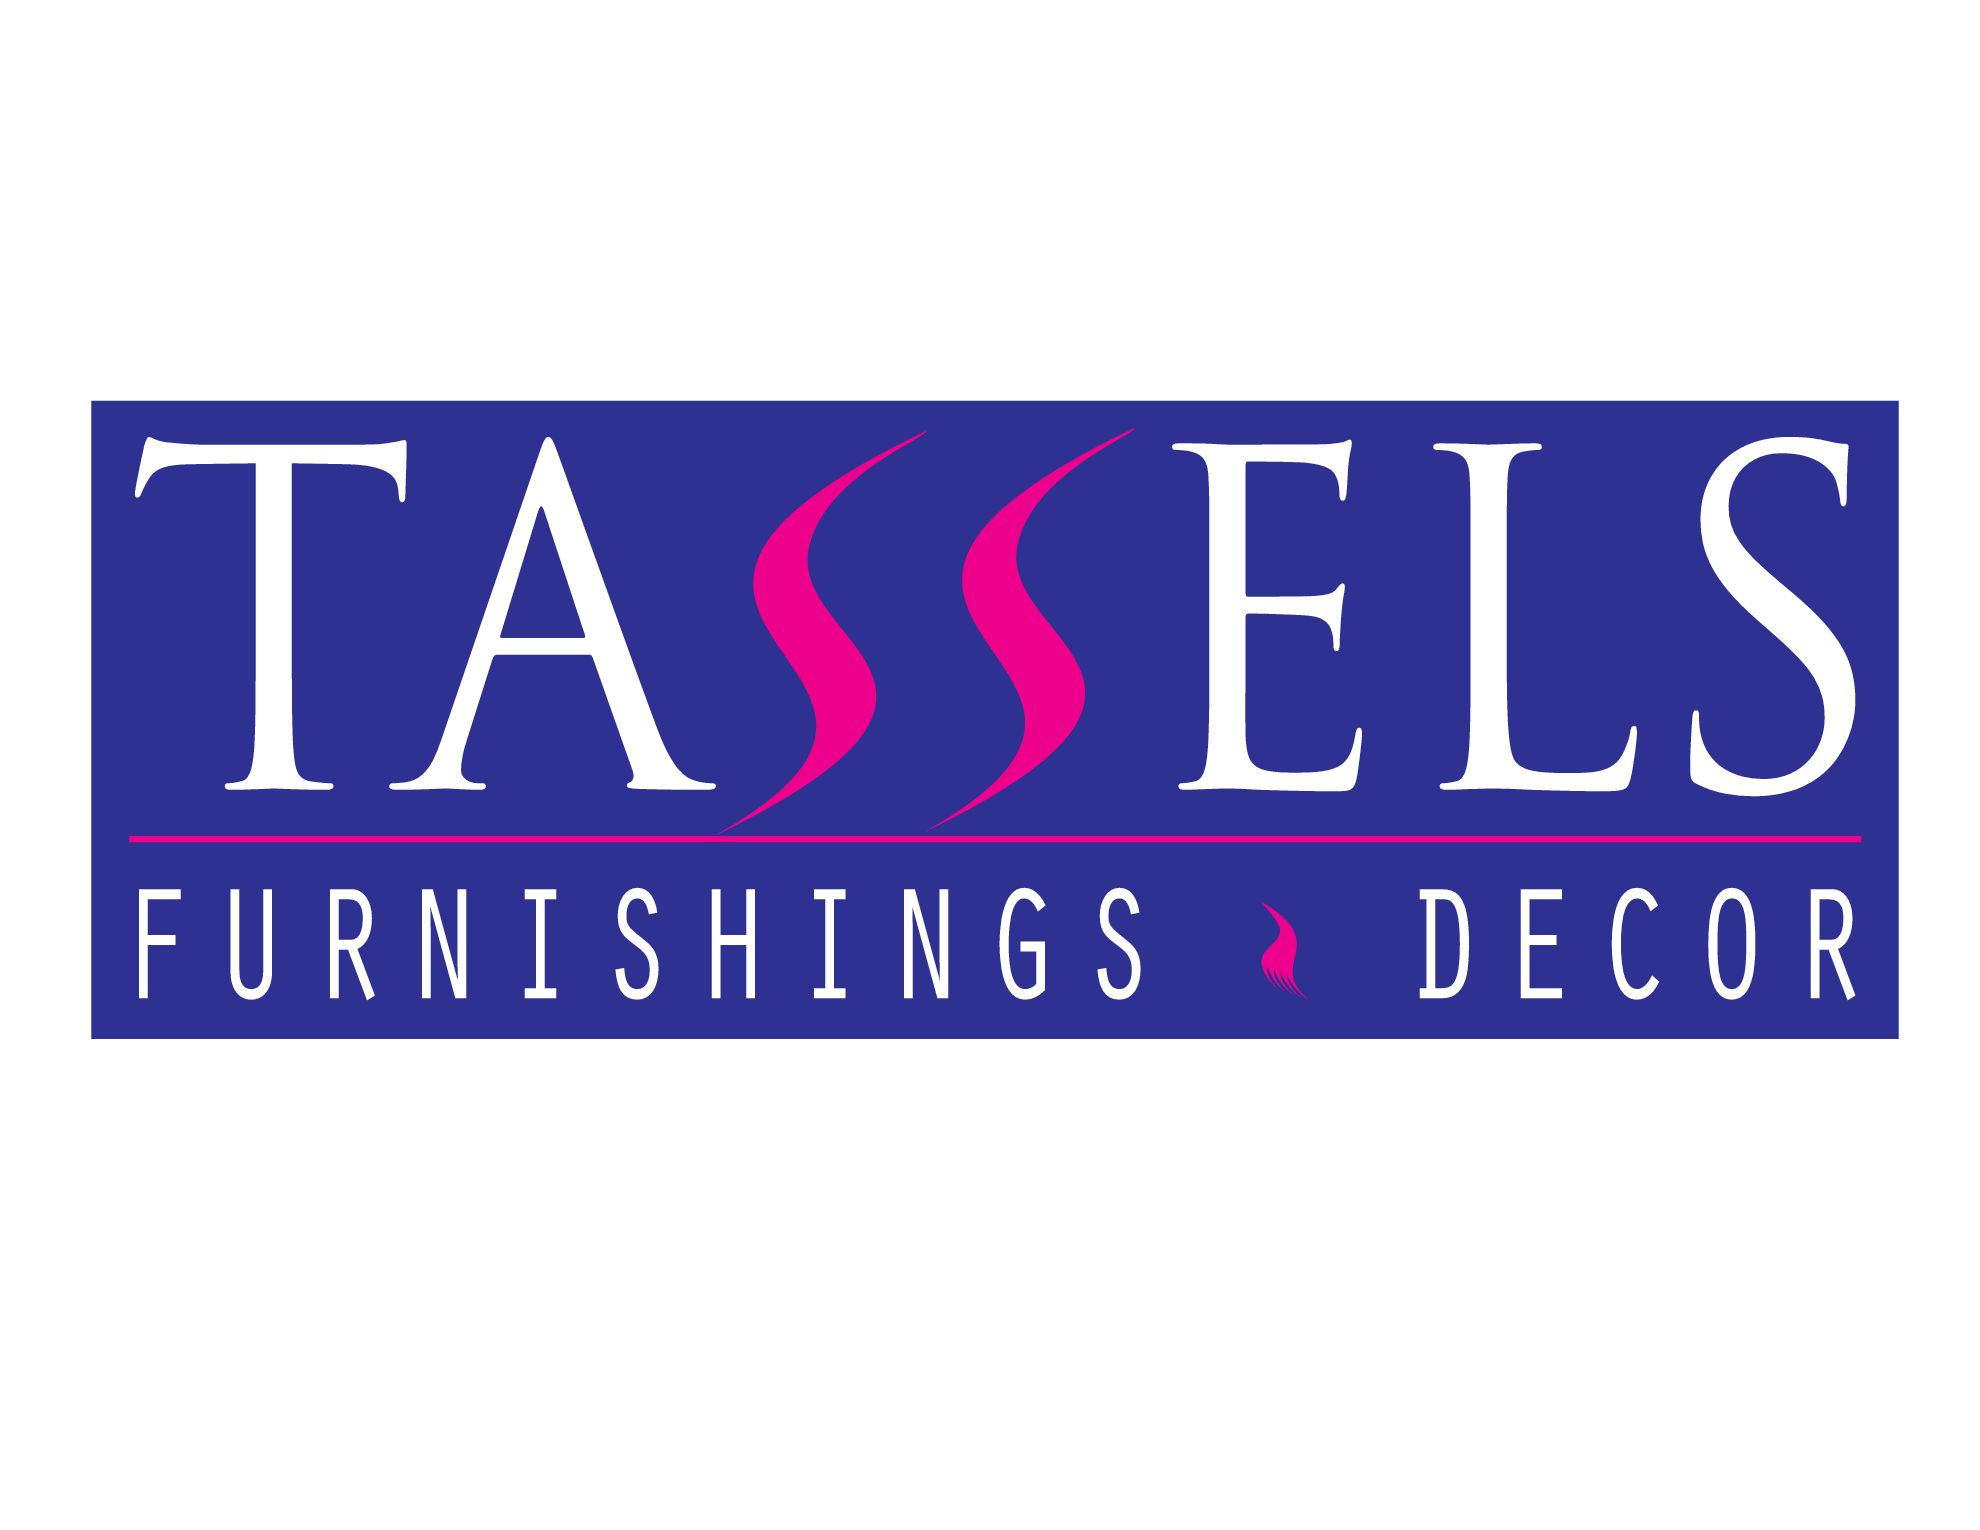 TASSELS FURNISHINGS